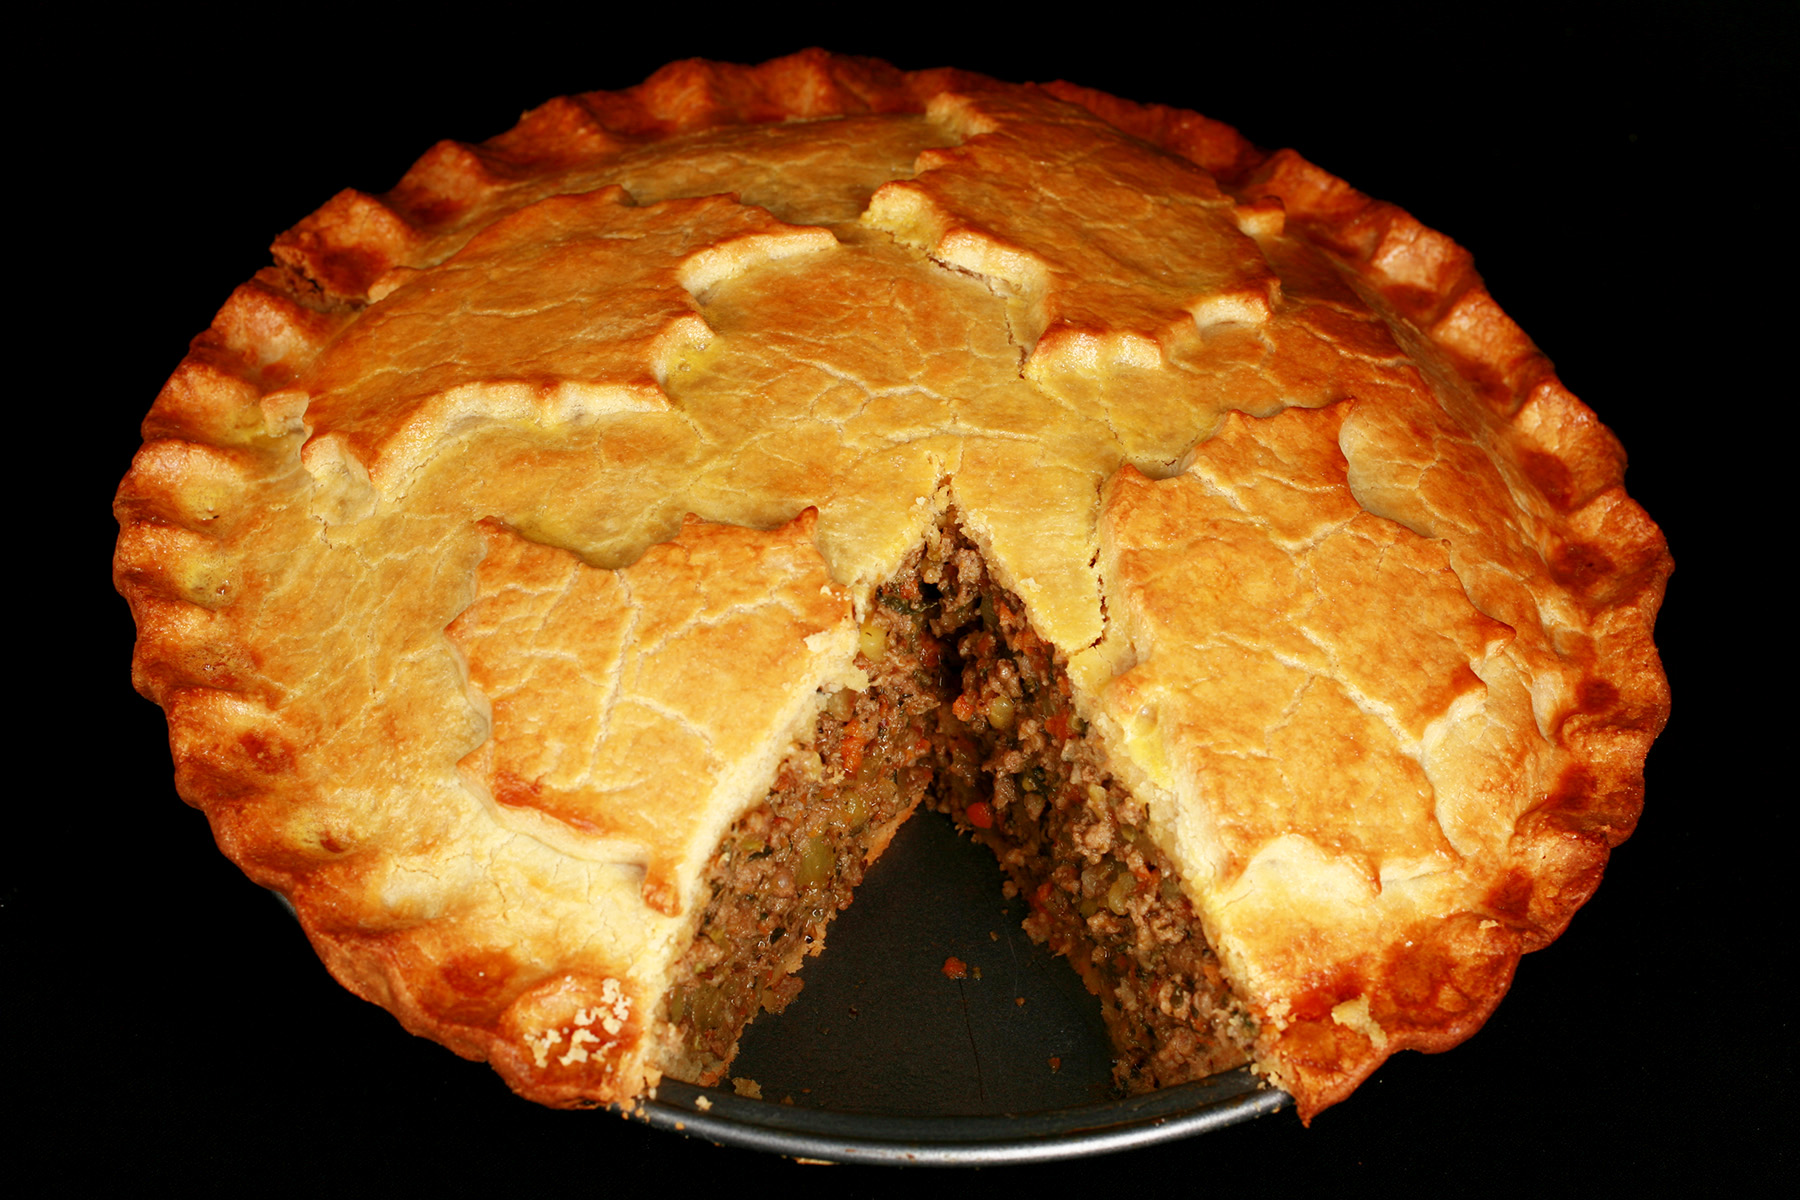 A golden brown gluten-free tourtiere meat pie, with a maple leaf design on top.. There is a section cut out of it